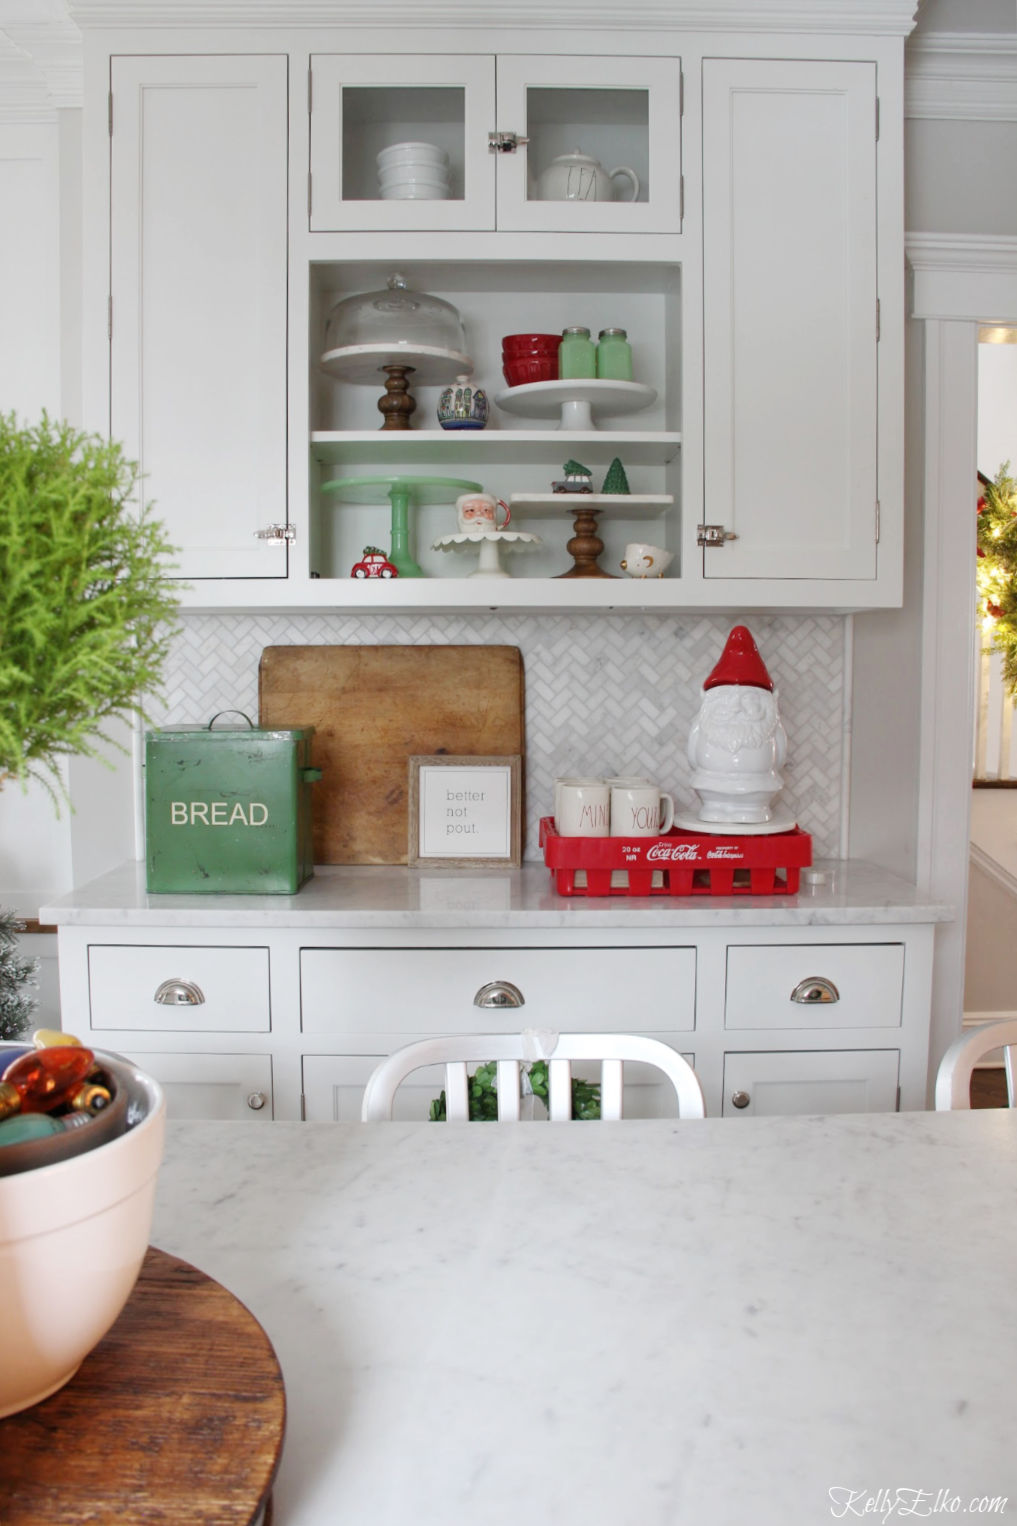 Christmas Home Tour - love the open shelves in this white kitchen decorated in red and green kellyelko.com #christmas #christmasdecor #christmasdecorating #christmashome #christmastour #diychristmas #christmasideas #christmasmantel #christmastree #christmasornaments #vintagechristmas #farmhousechristmas #colorfulchristmas #creativechristmas #kellyelko #christmaskitchen #vintagedecor #breadbox #gnome #openshelves